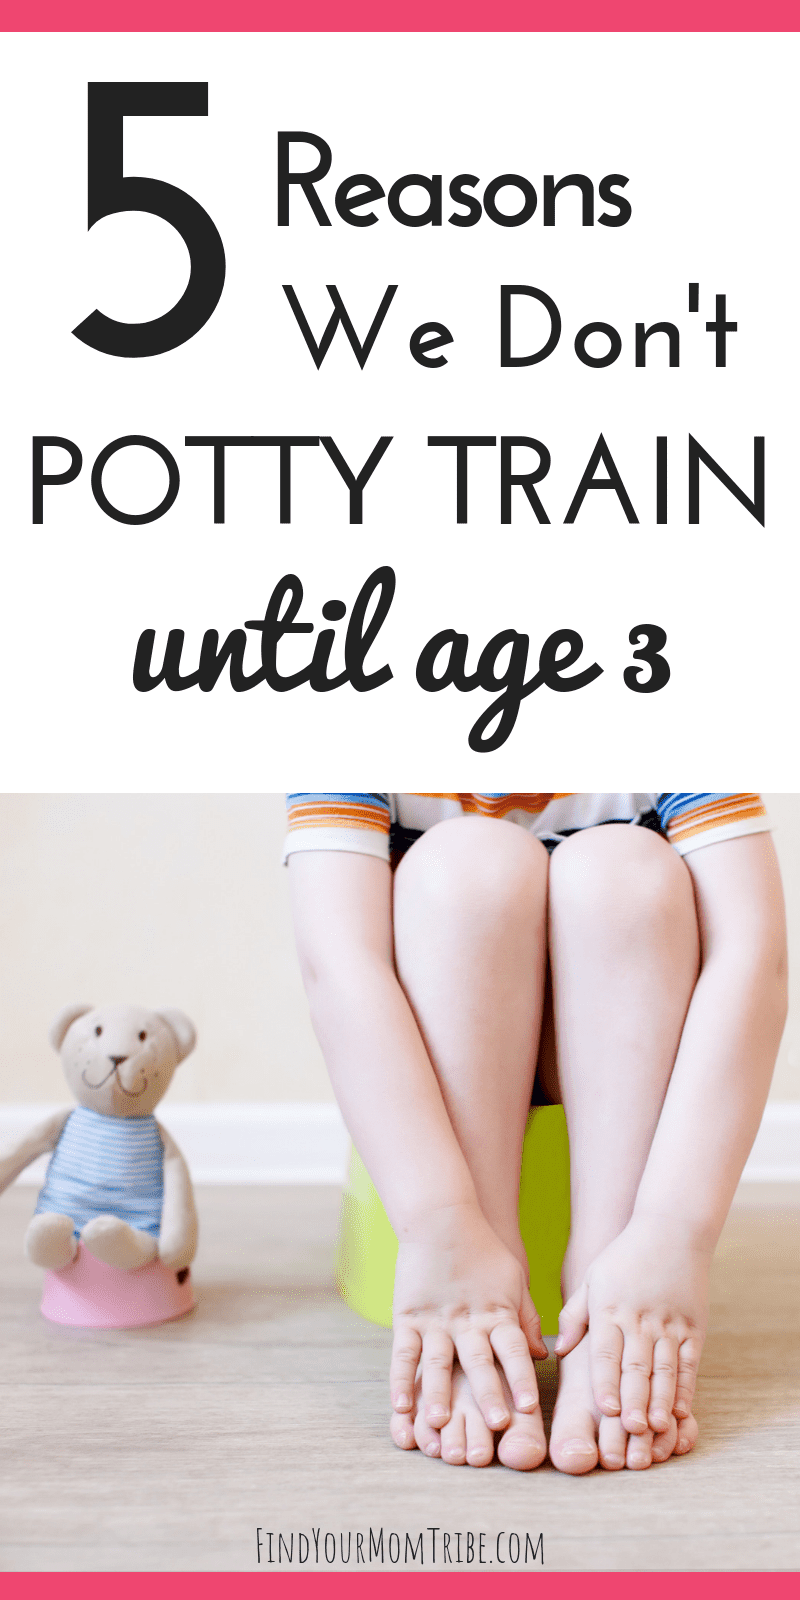 potty train until age 3